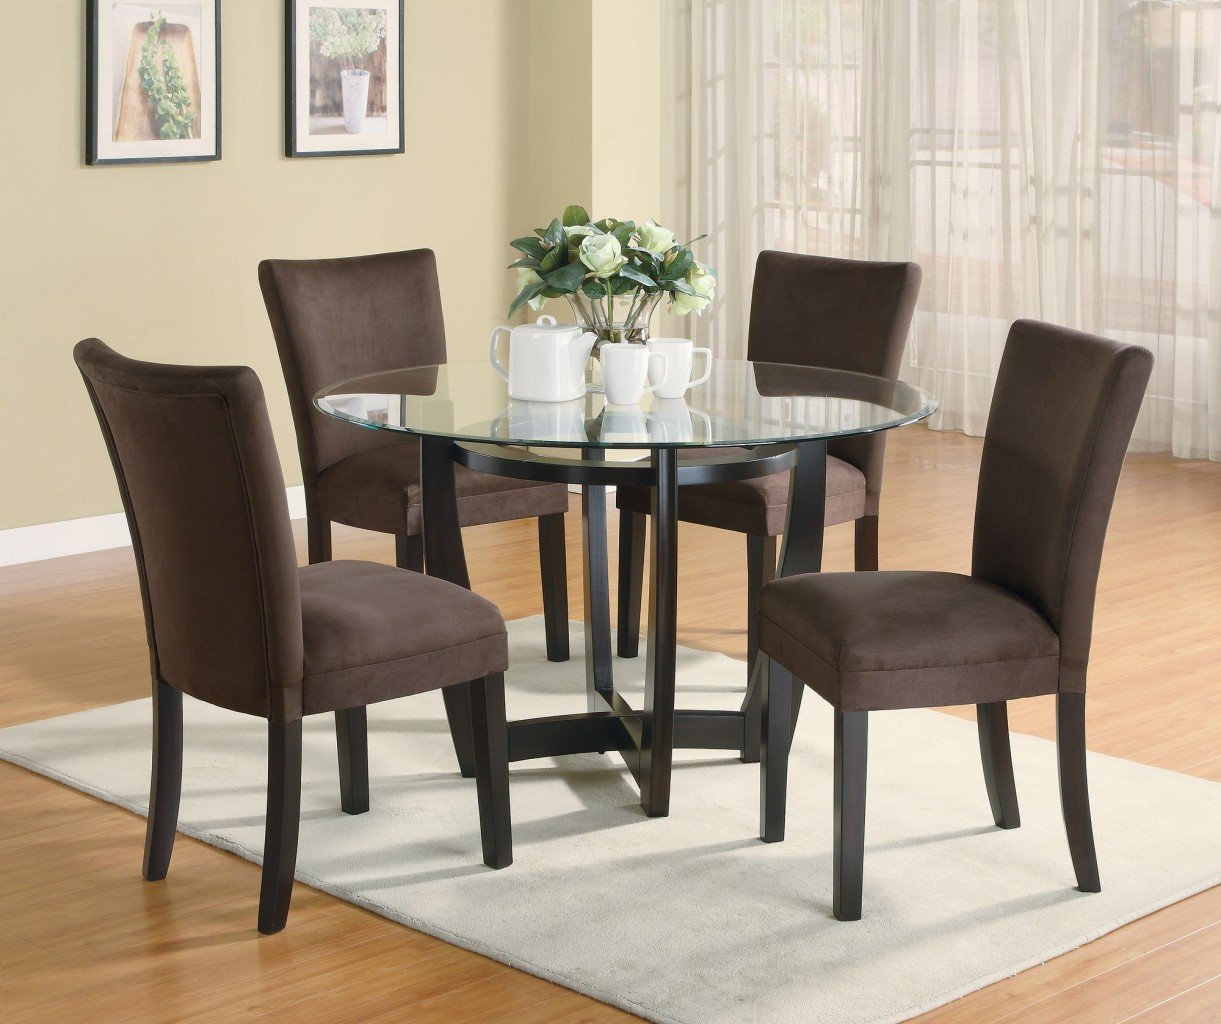 Cheap dining room table sets home furniture design for The room furniture